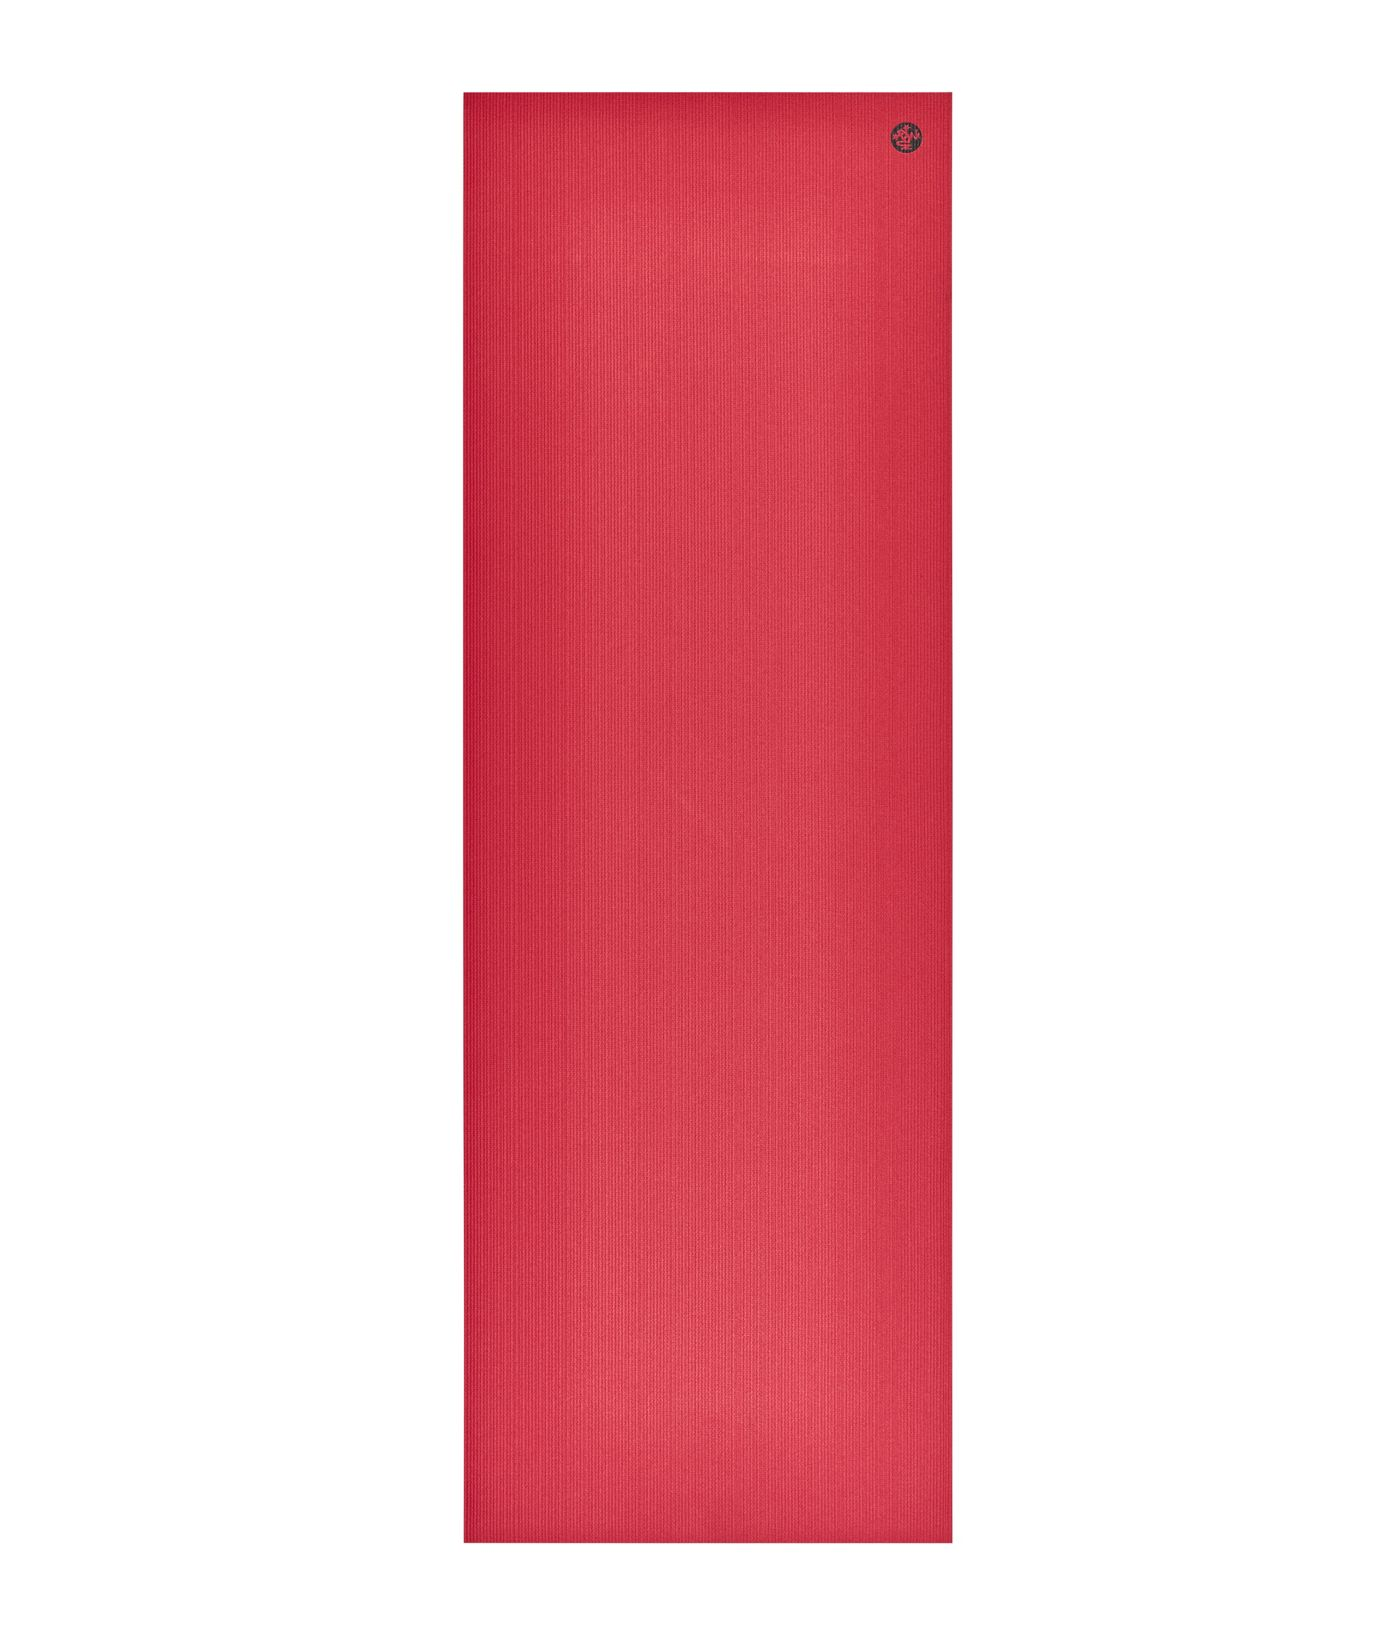 Manduka 5mm PROlite Yoga Mat